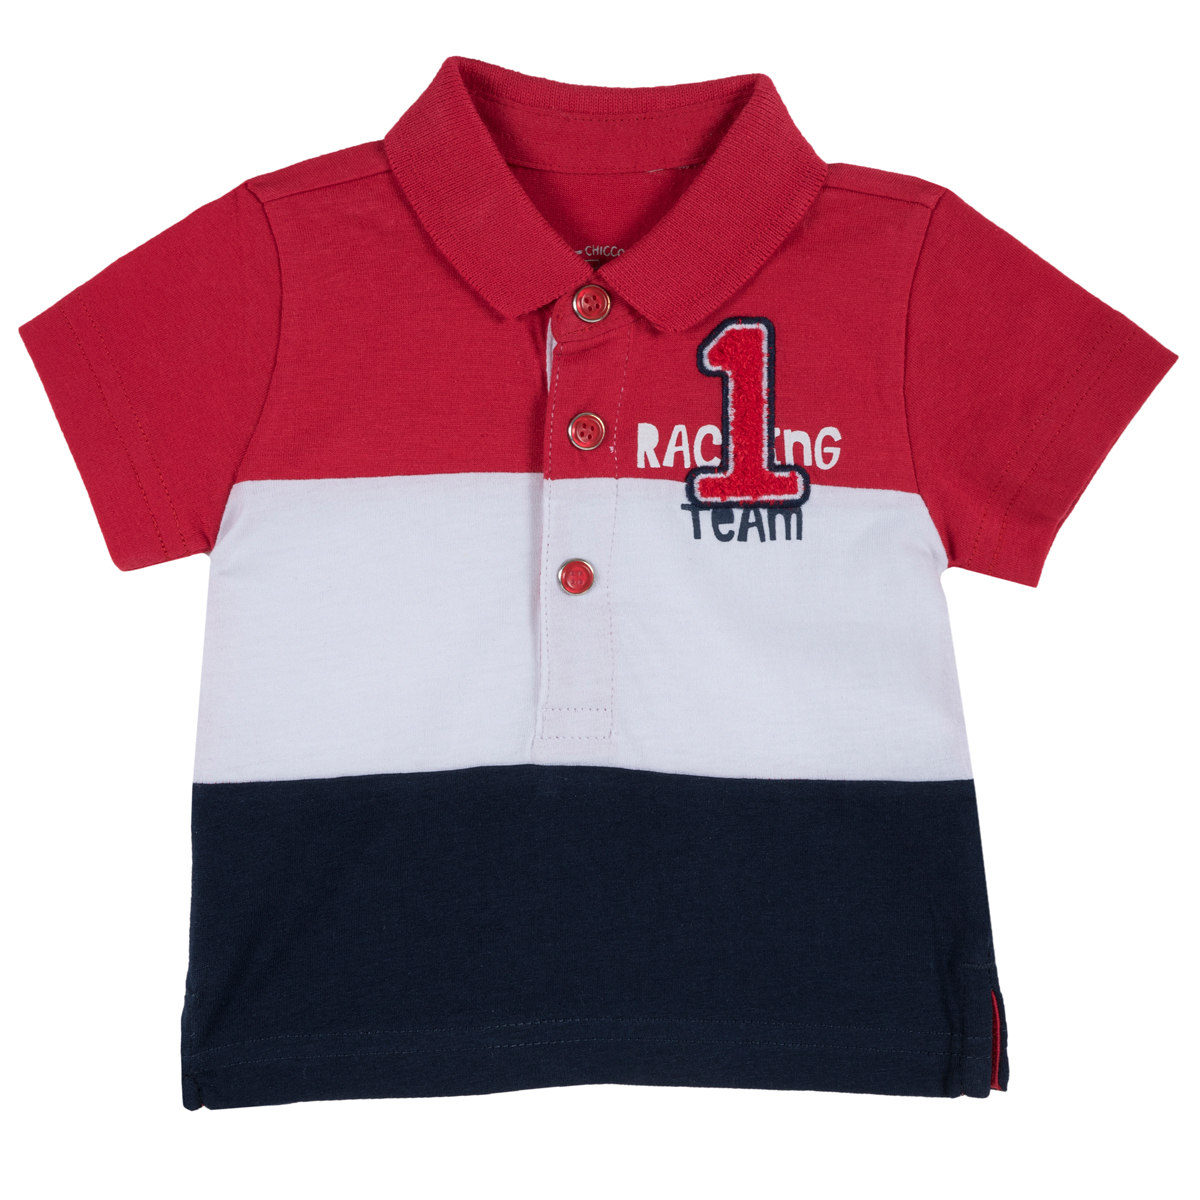 Tricou copii Chicco NR1, maneca scurta, tip Polo, rosu, 33486 din categoria Tricouri copii